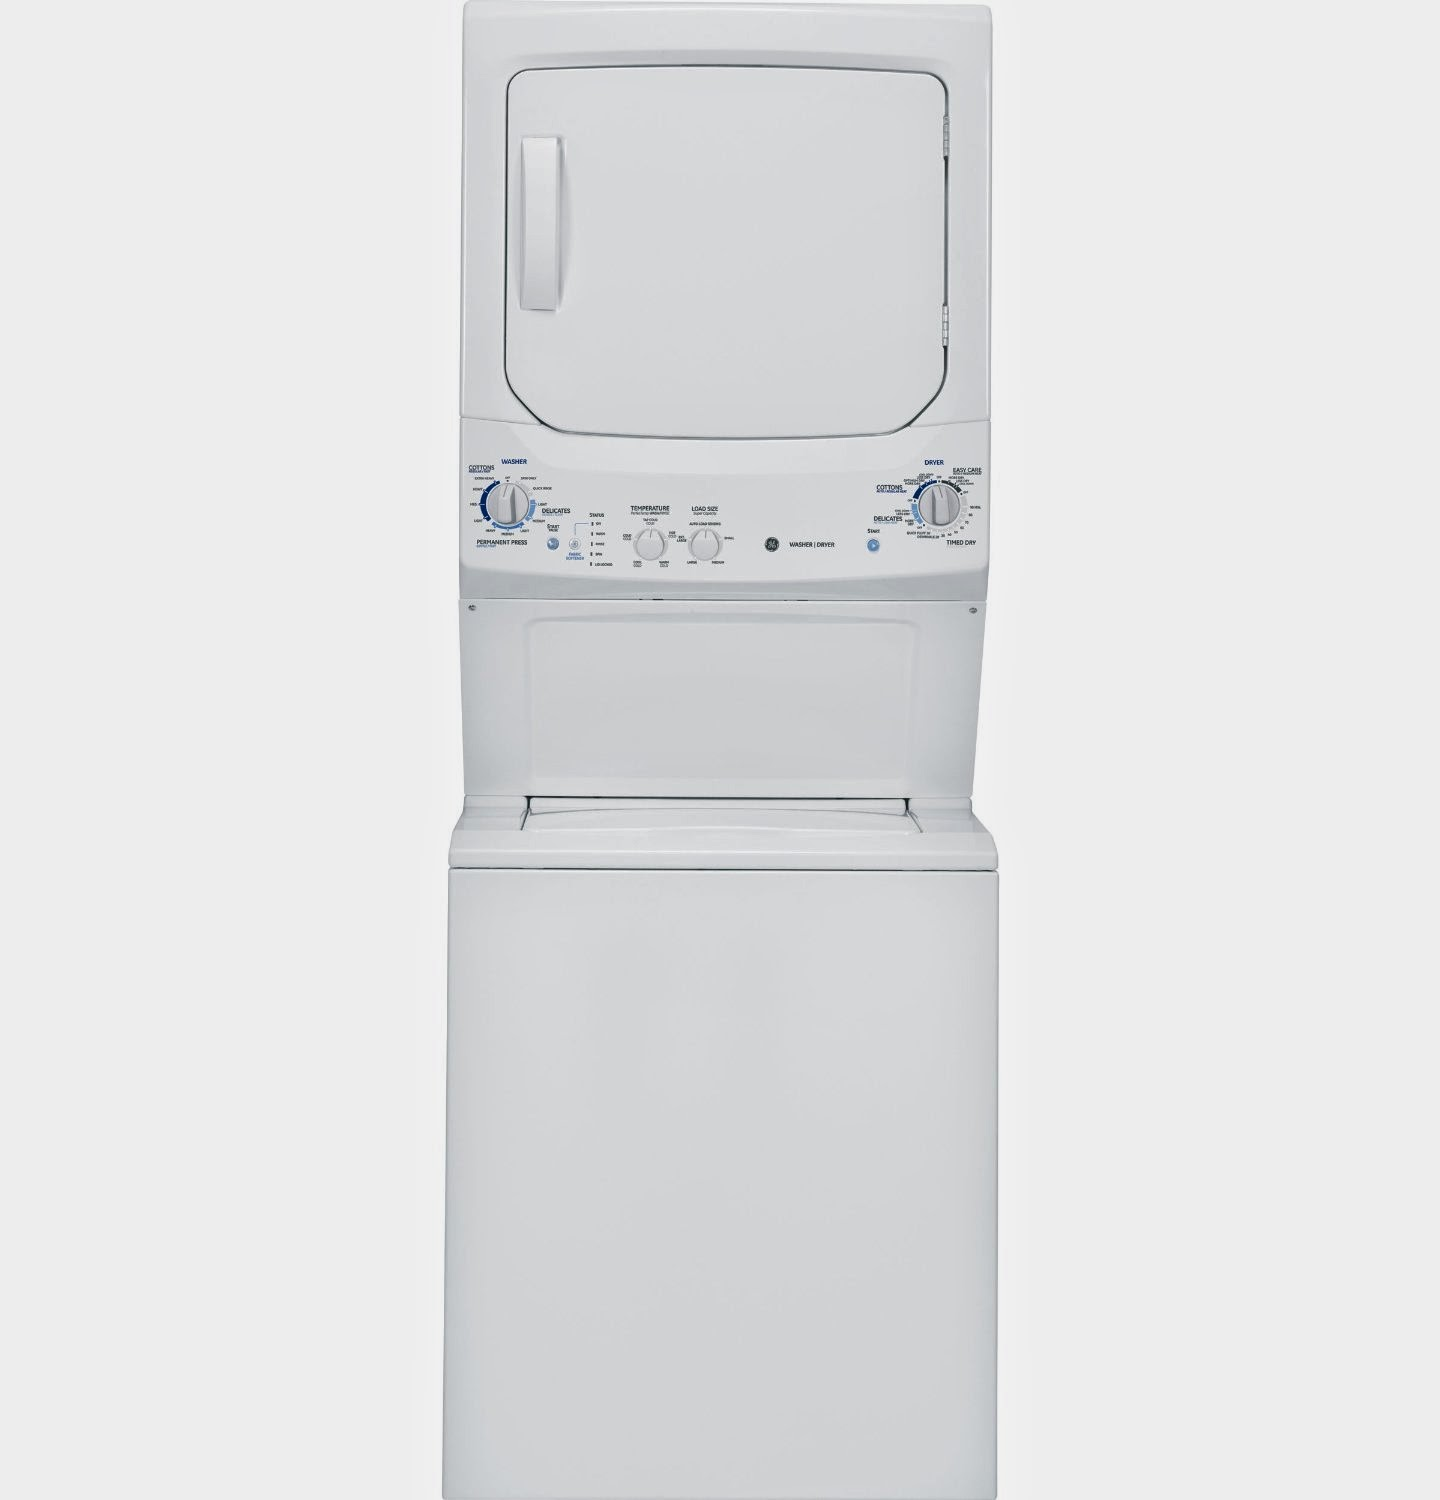 Lg Graphite Washer And Dryer all in one washer dryer